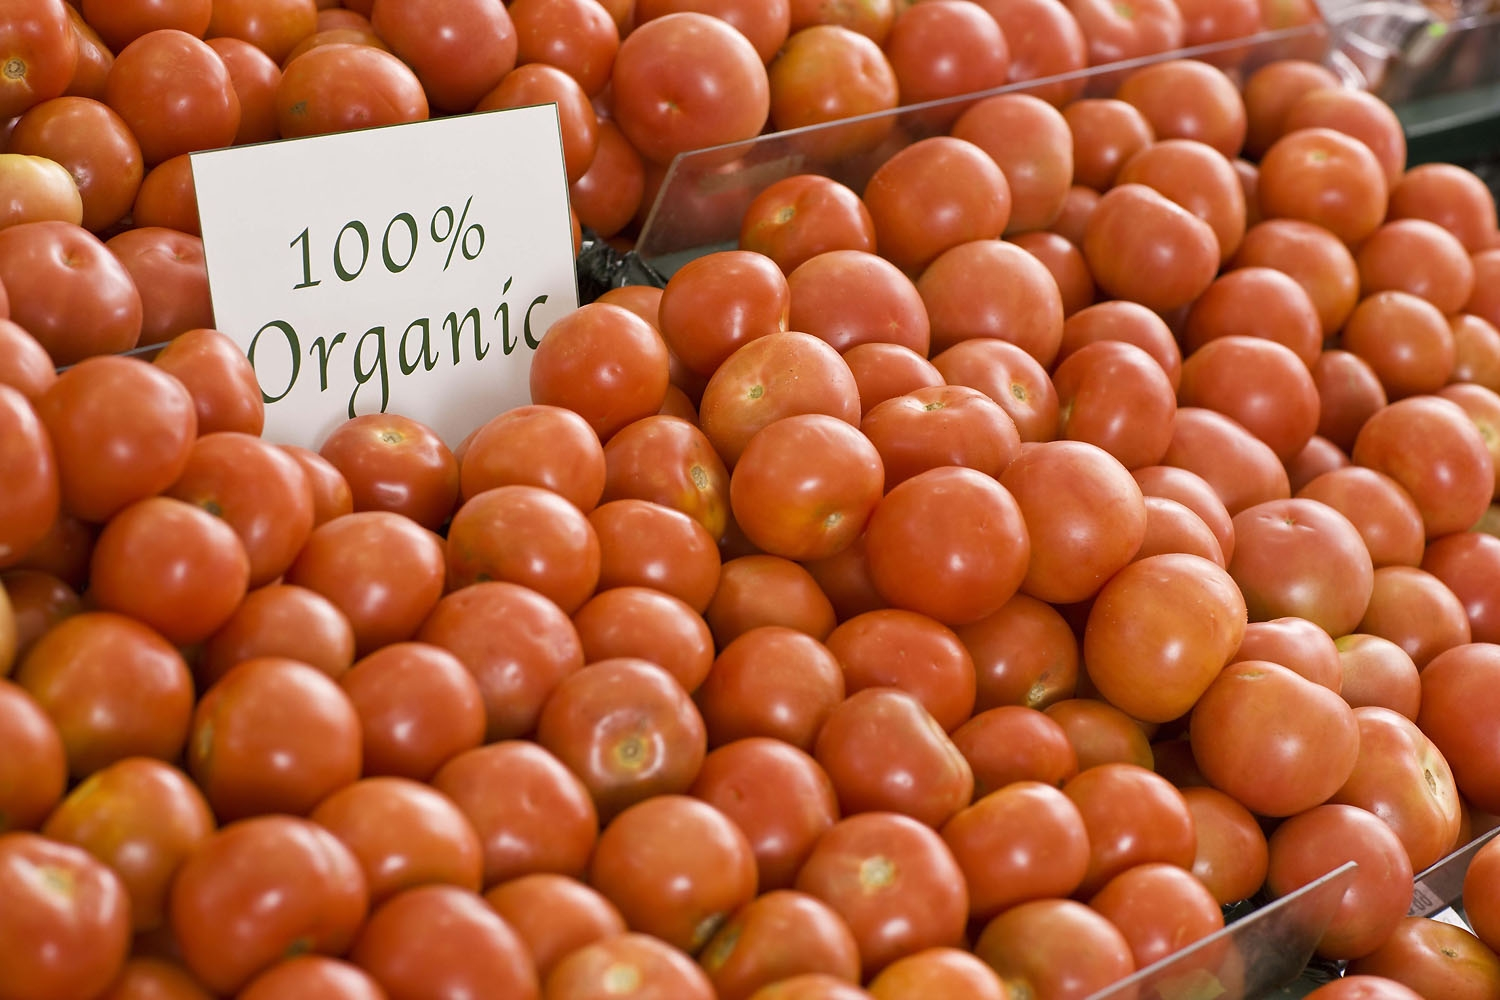 Is Organic Food Healthier Than Conventionally Grown Food